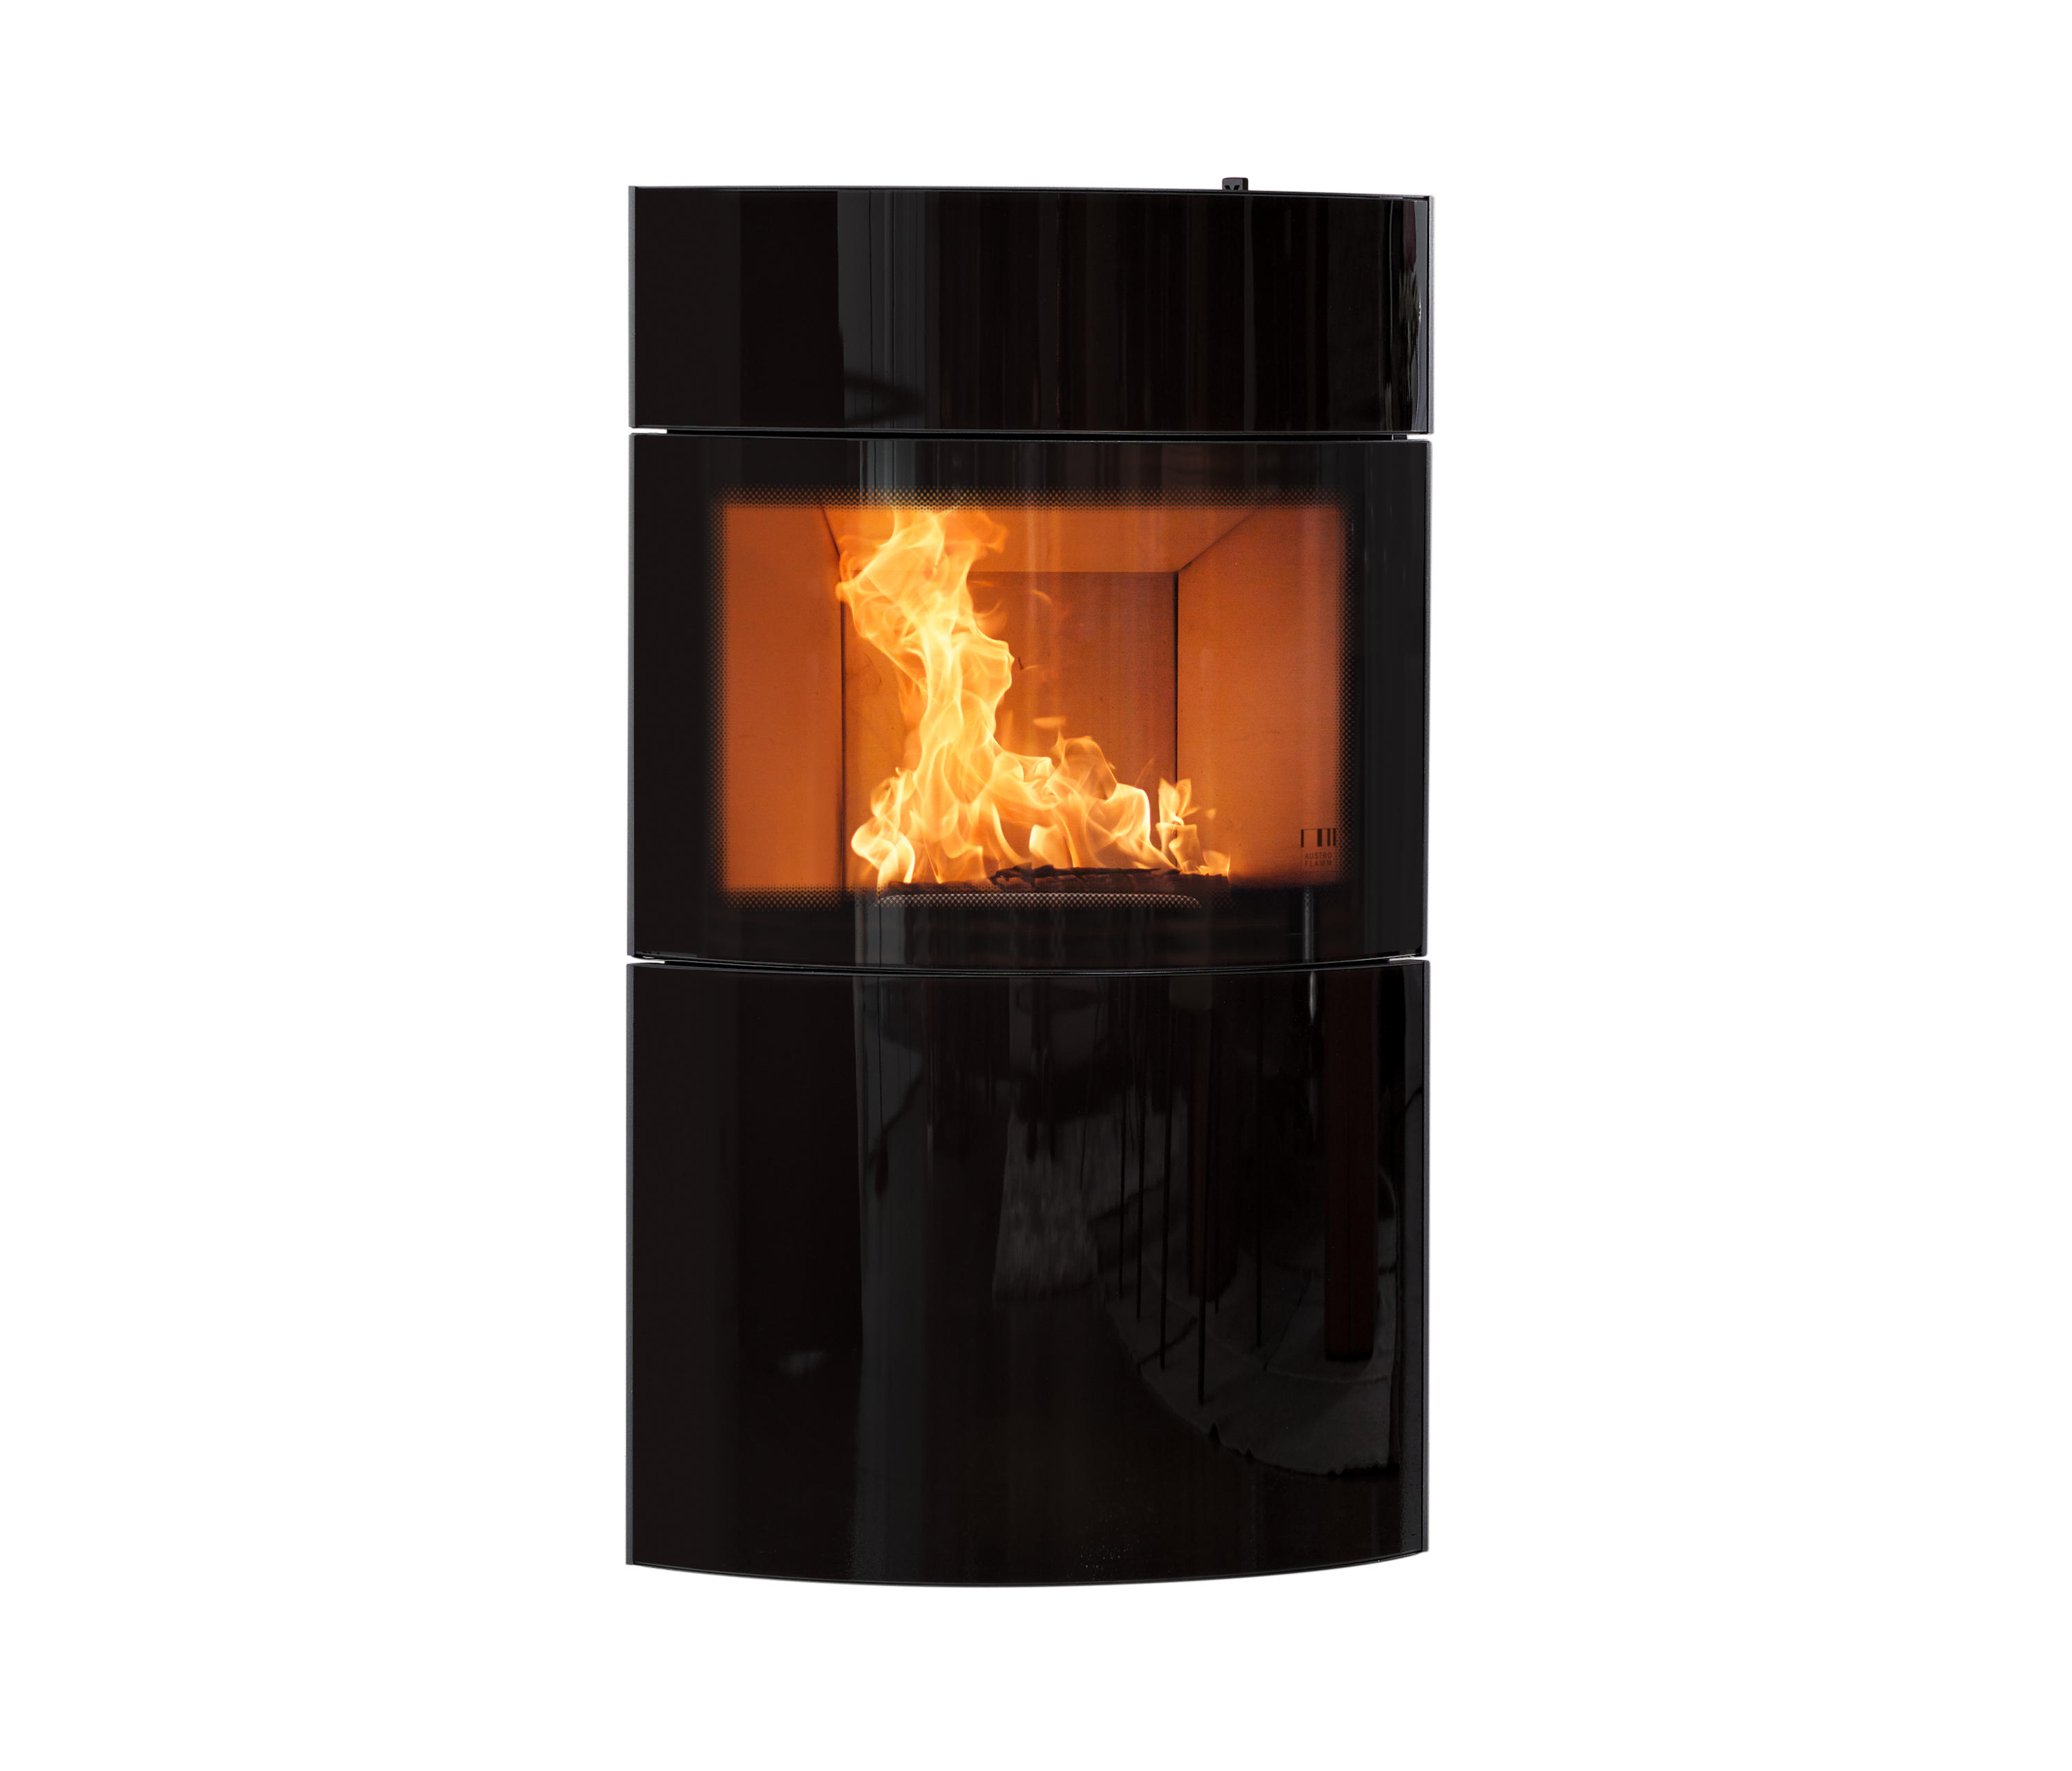 Kaminofen Austroflamm Stila Fynn Xtra Stoves From Austroflamm Architonic